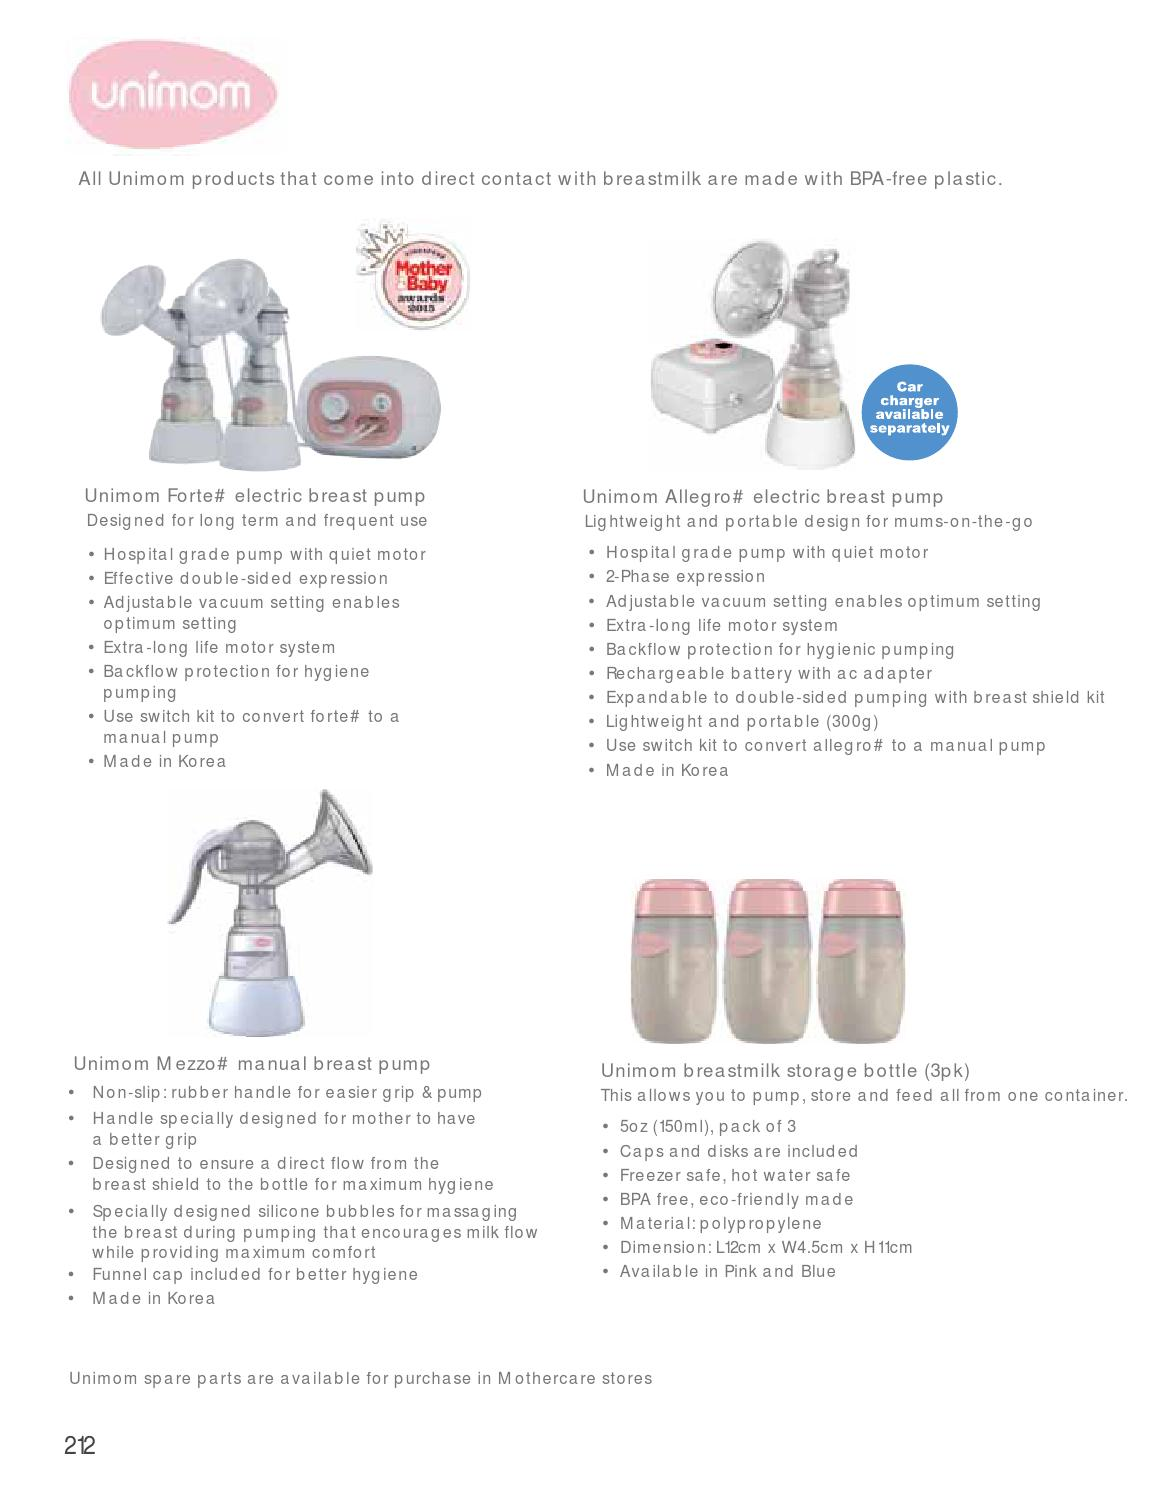 Mothercare Singapore Catalogue 2016 2017 By Sg Issuu Unimom Allegro Electric Breast Pump